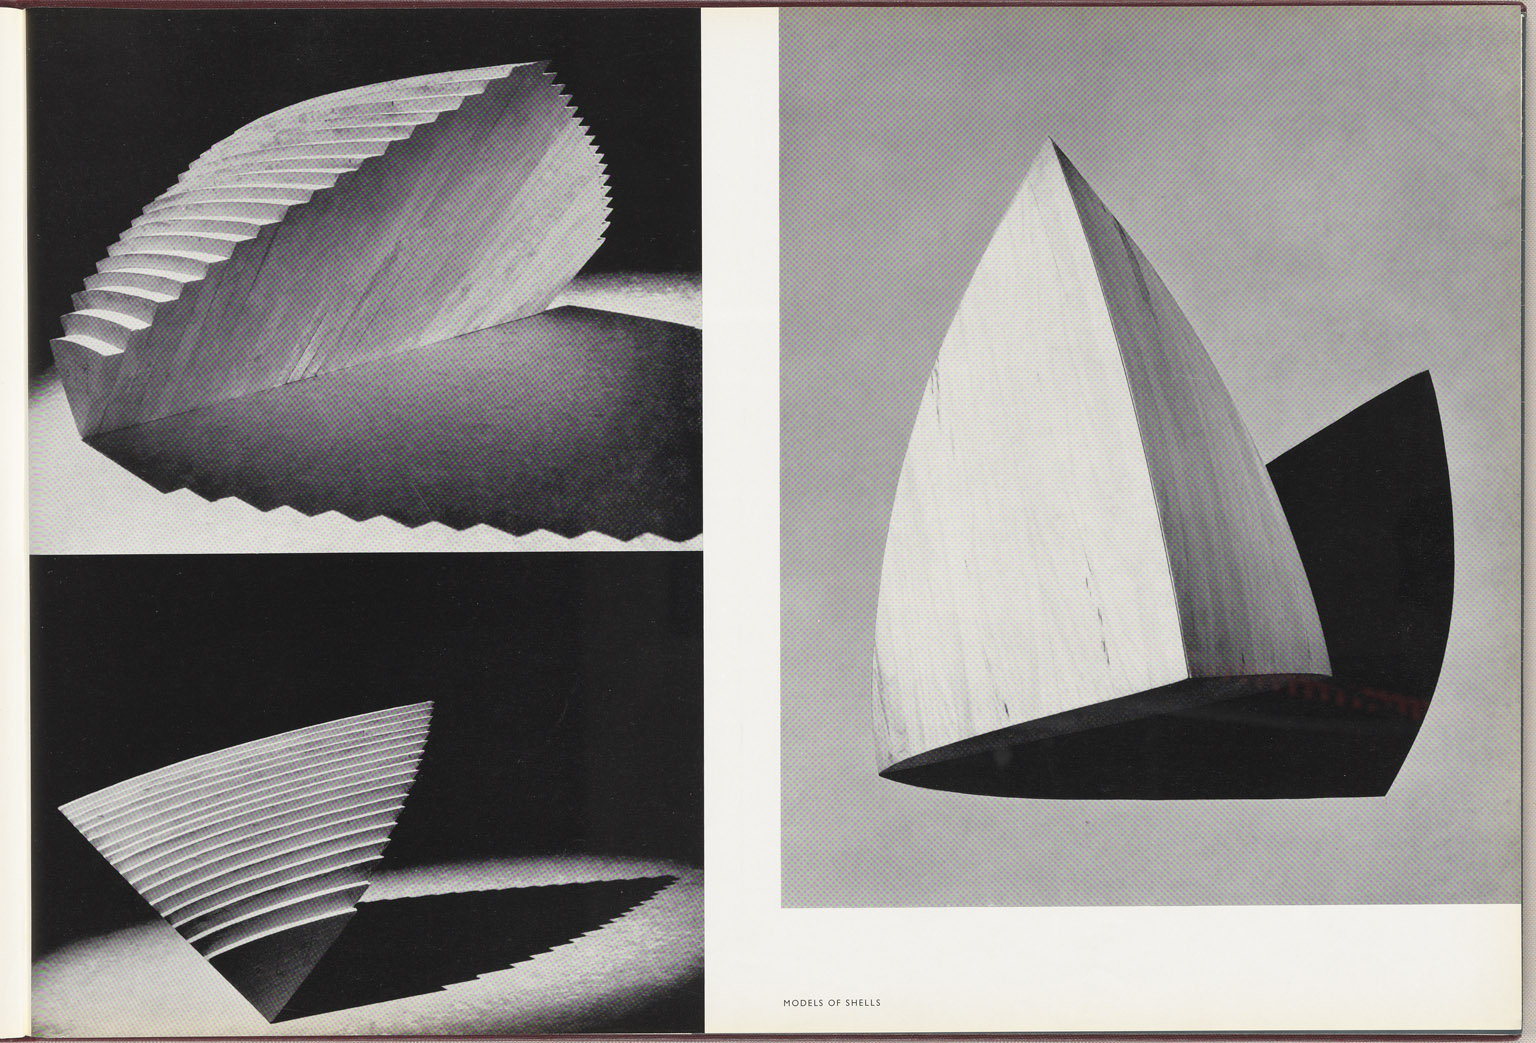 Models of shells Sydney Opera House Red Book